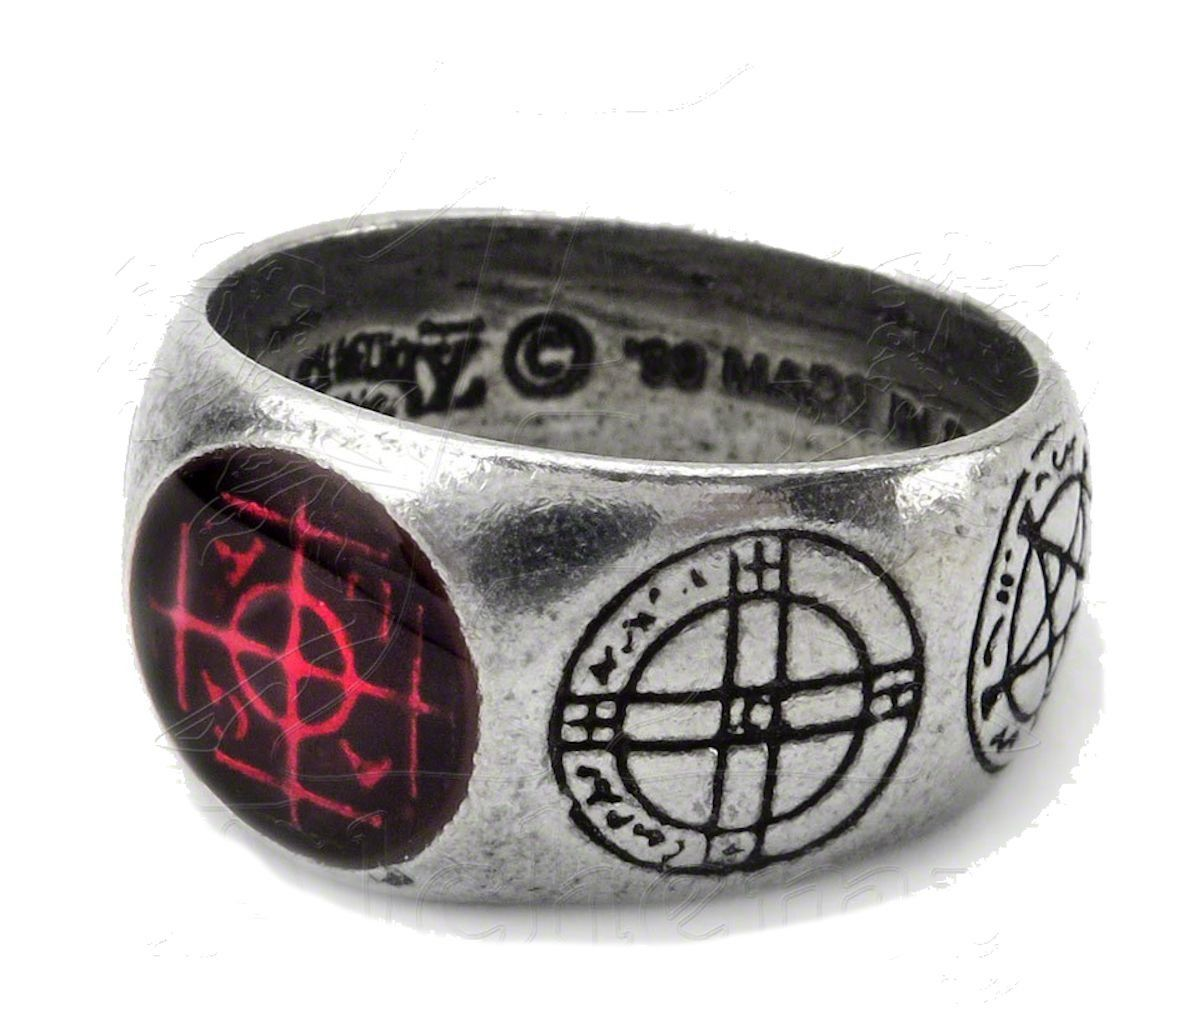 wiccan convergence rings at pagan jewelry enameled pentagram ring jewerly mystic witchcraft toe roseus supplies pewter finger